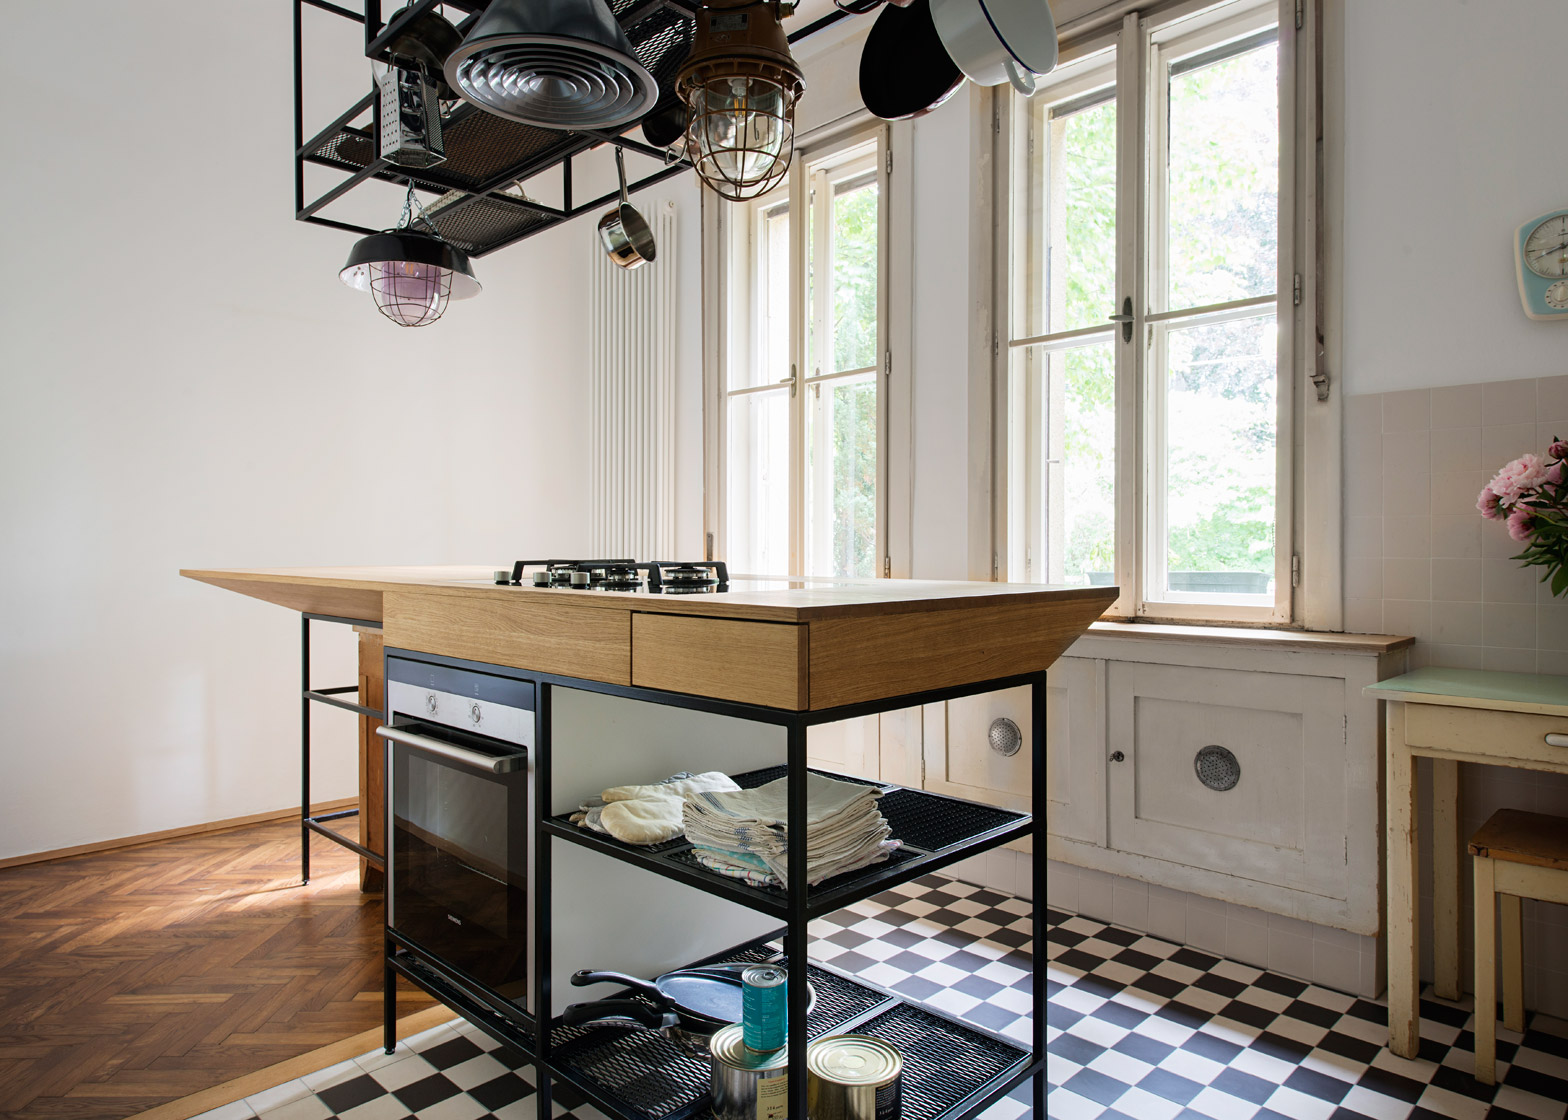 Parquet Flooring Kitchen Ifub Uncovers Parquet Flooring In 1930s Art Deco Apartment